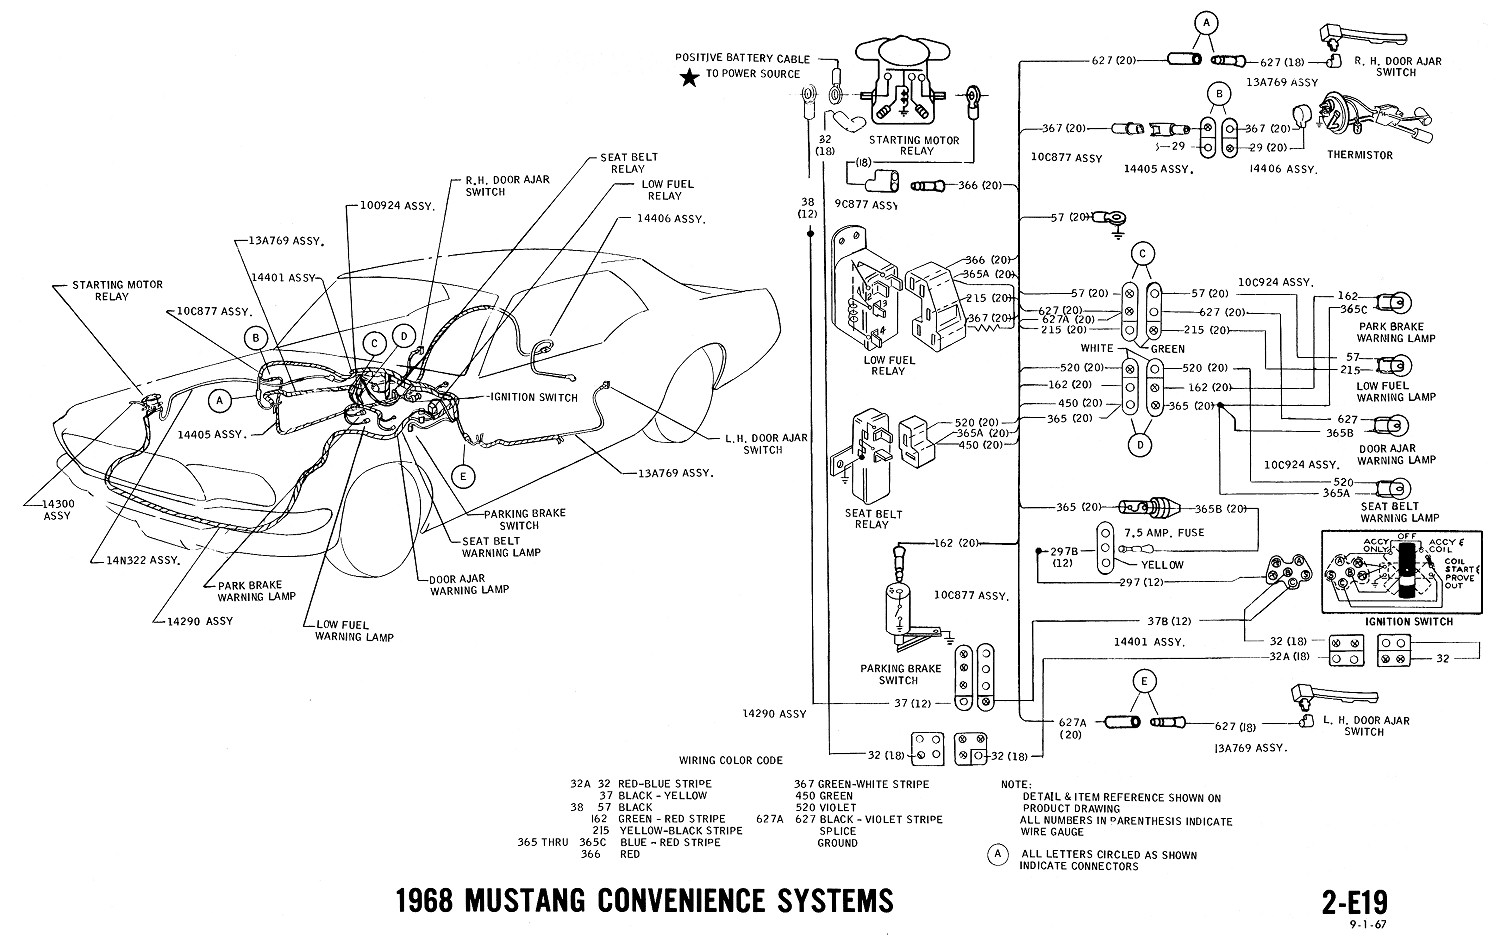 1968 mustang wiring diagrams evolving software convenience systems swarovskicordoba Images